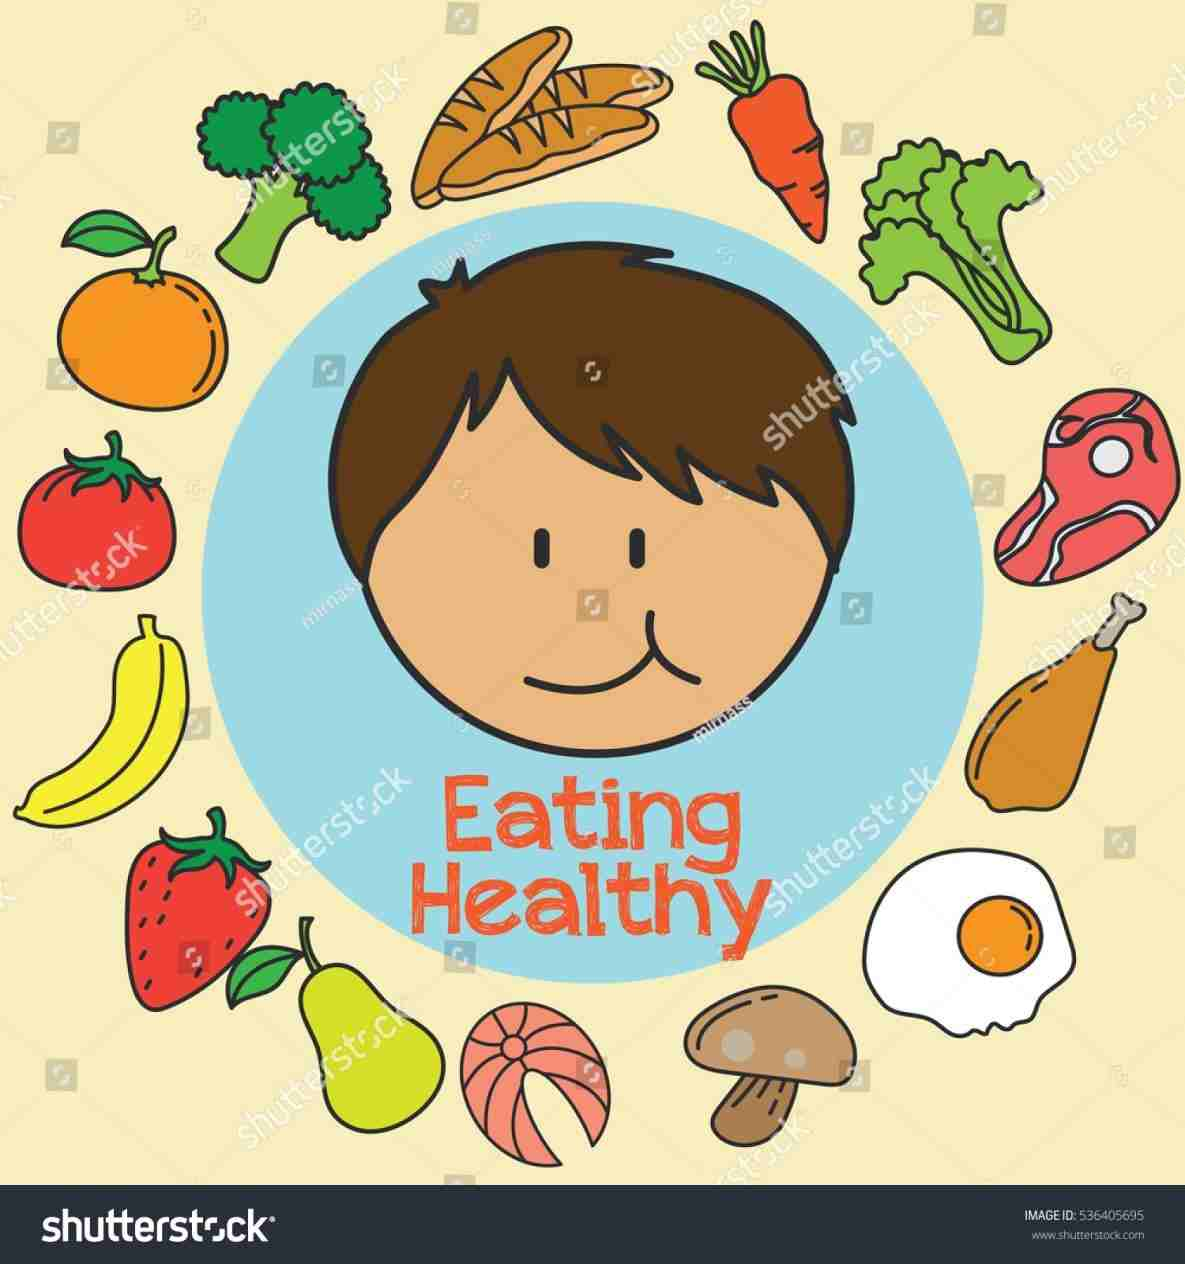 graphic free download Children rhyoutubecom nutrition eating. Healthy foods for kids clipart.